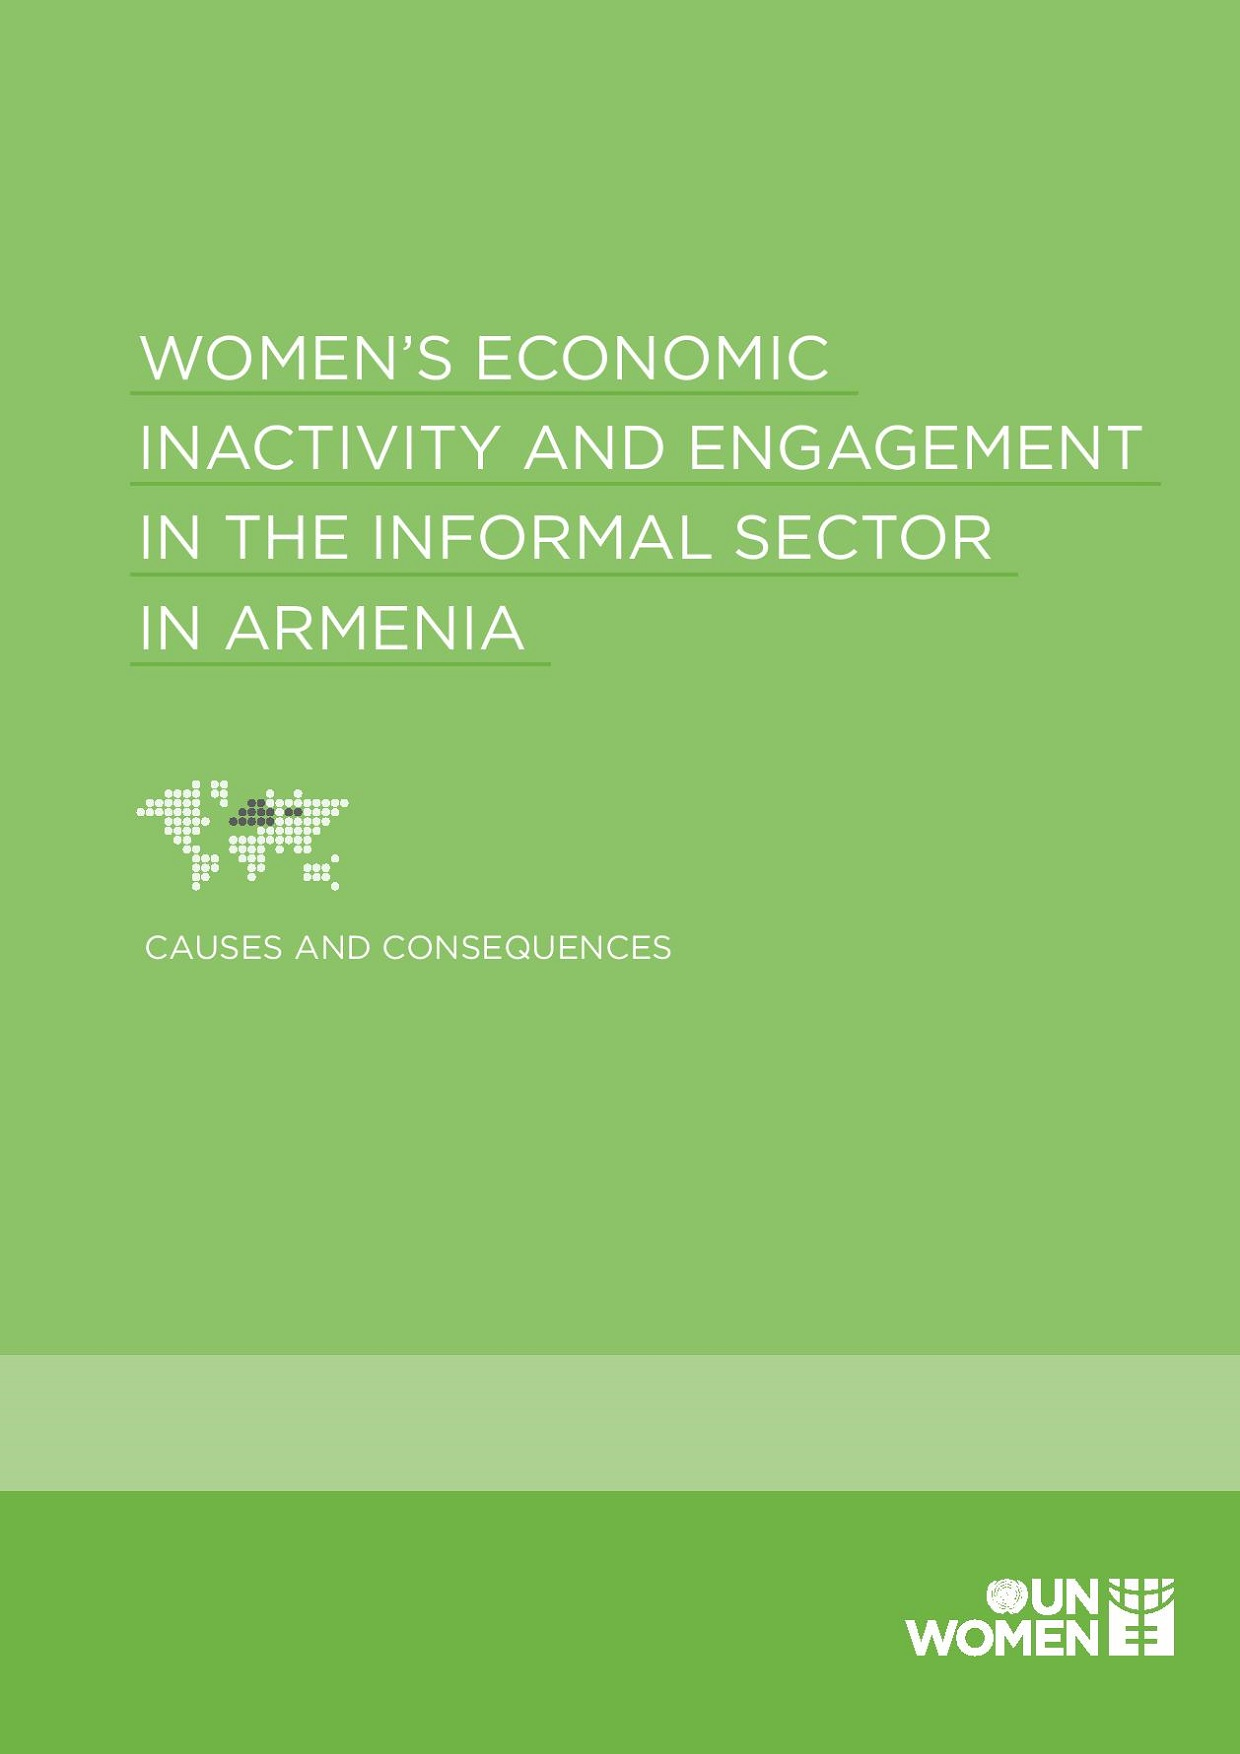 Women's Economic Inactivity and Engagement in the Informal Sector in Armenia